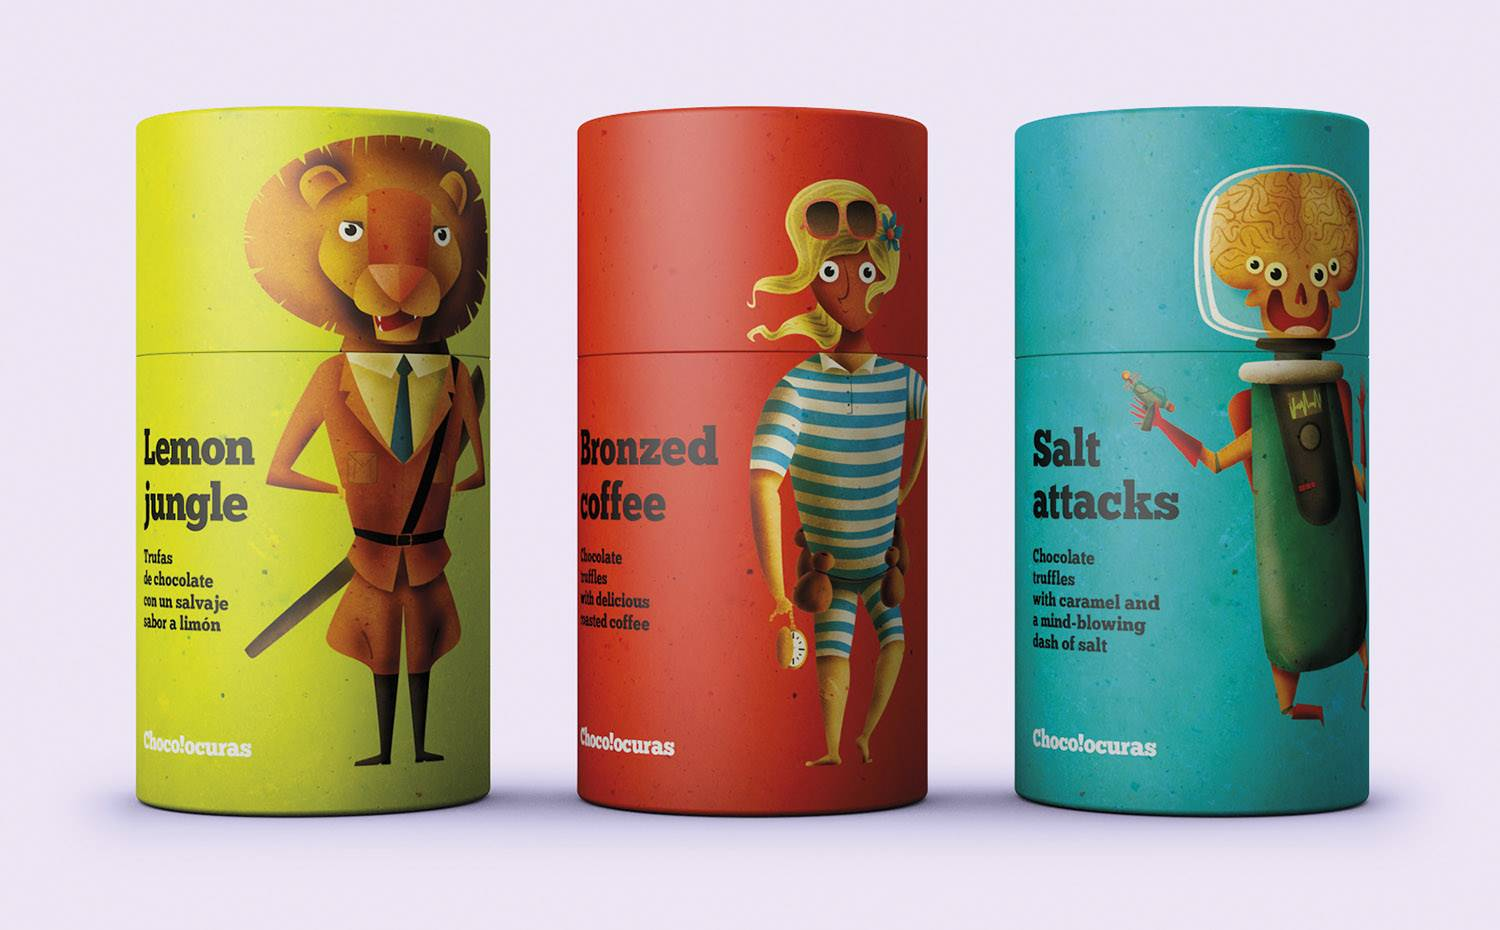 El trabajo de Supperstudio en la muestra Super-packaging.